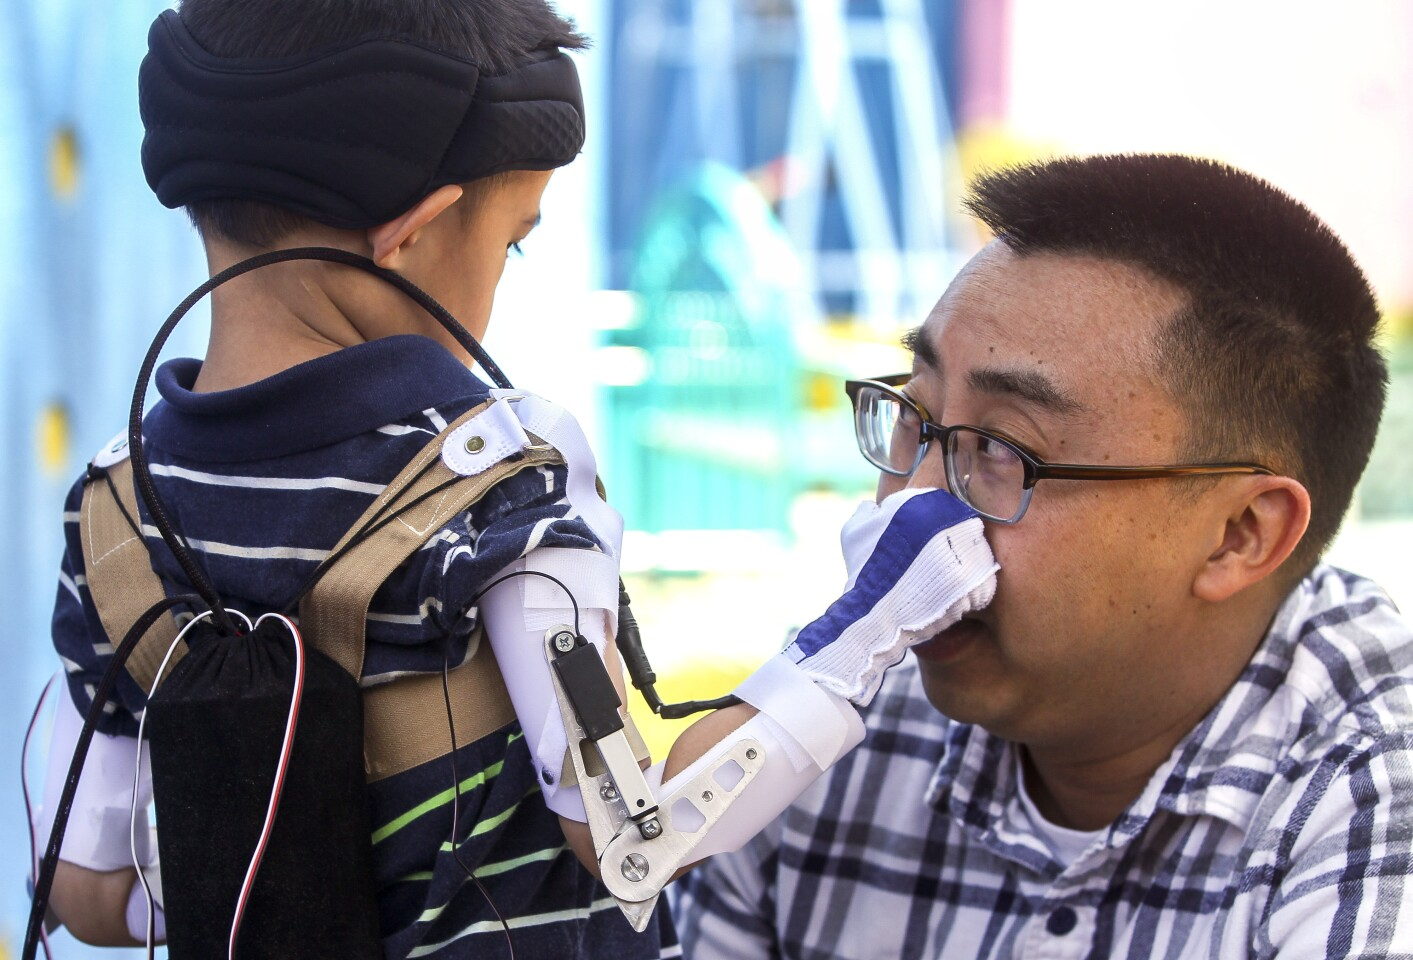 Five-year-old Max Ng, whose arms are paralyzed due to acute flaccid myelitis, is able to grab the nose of his father Ted Ng, thanks to a custom motorized orthotic brace that mechanical engineering undergraduate students at UC San Diego have created, during a demonstration of the brace at Rady Children's Hospital on Friday, June 14, 2019 in San Diego, California.